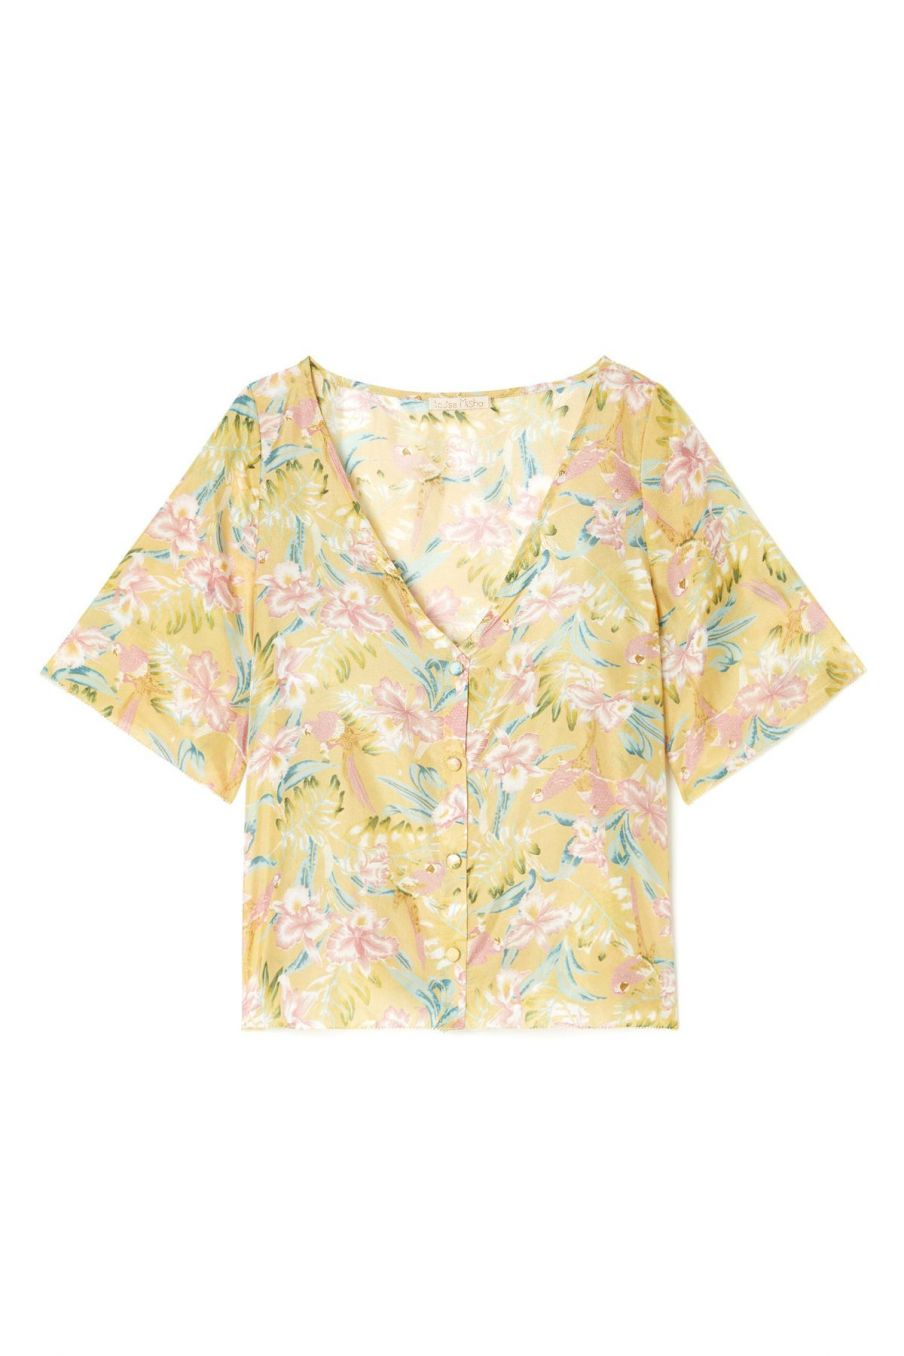 boheme chic vintage blouse femme goyava soft honey parrots